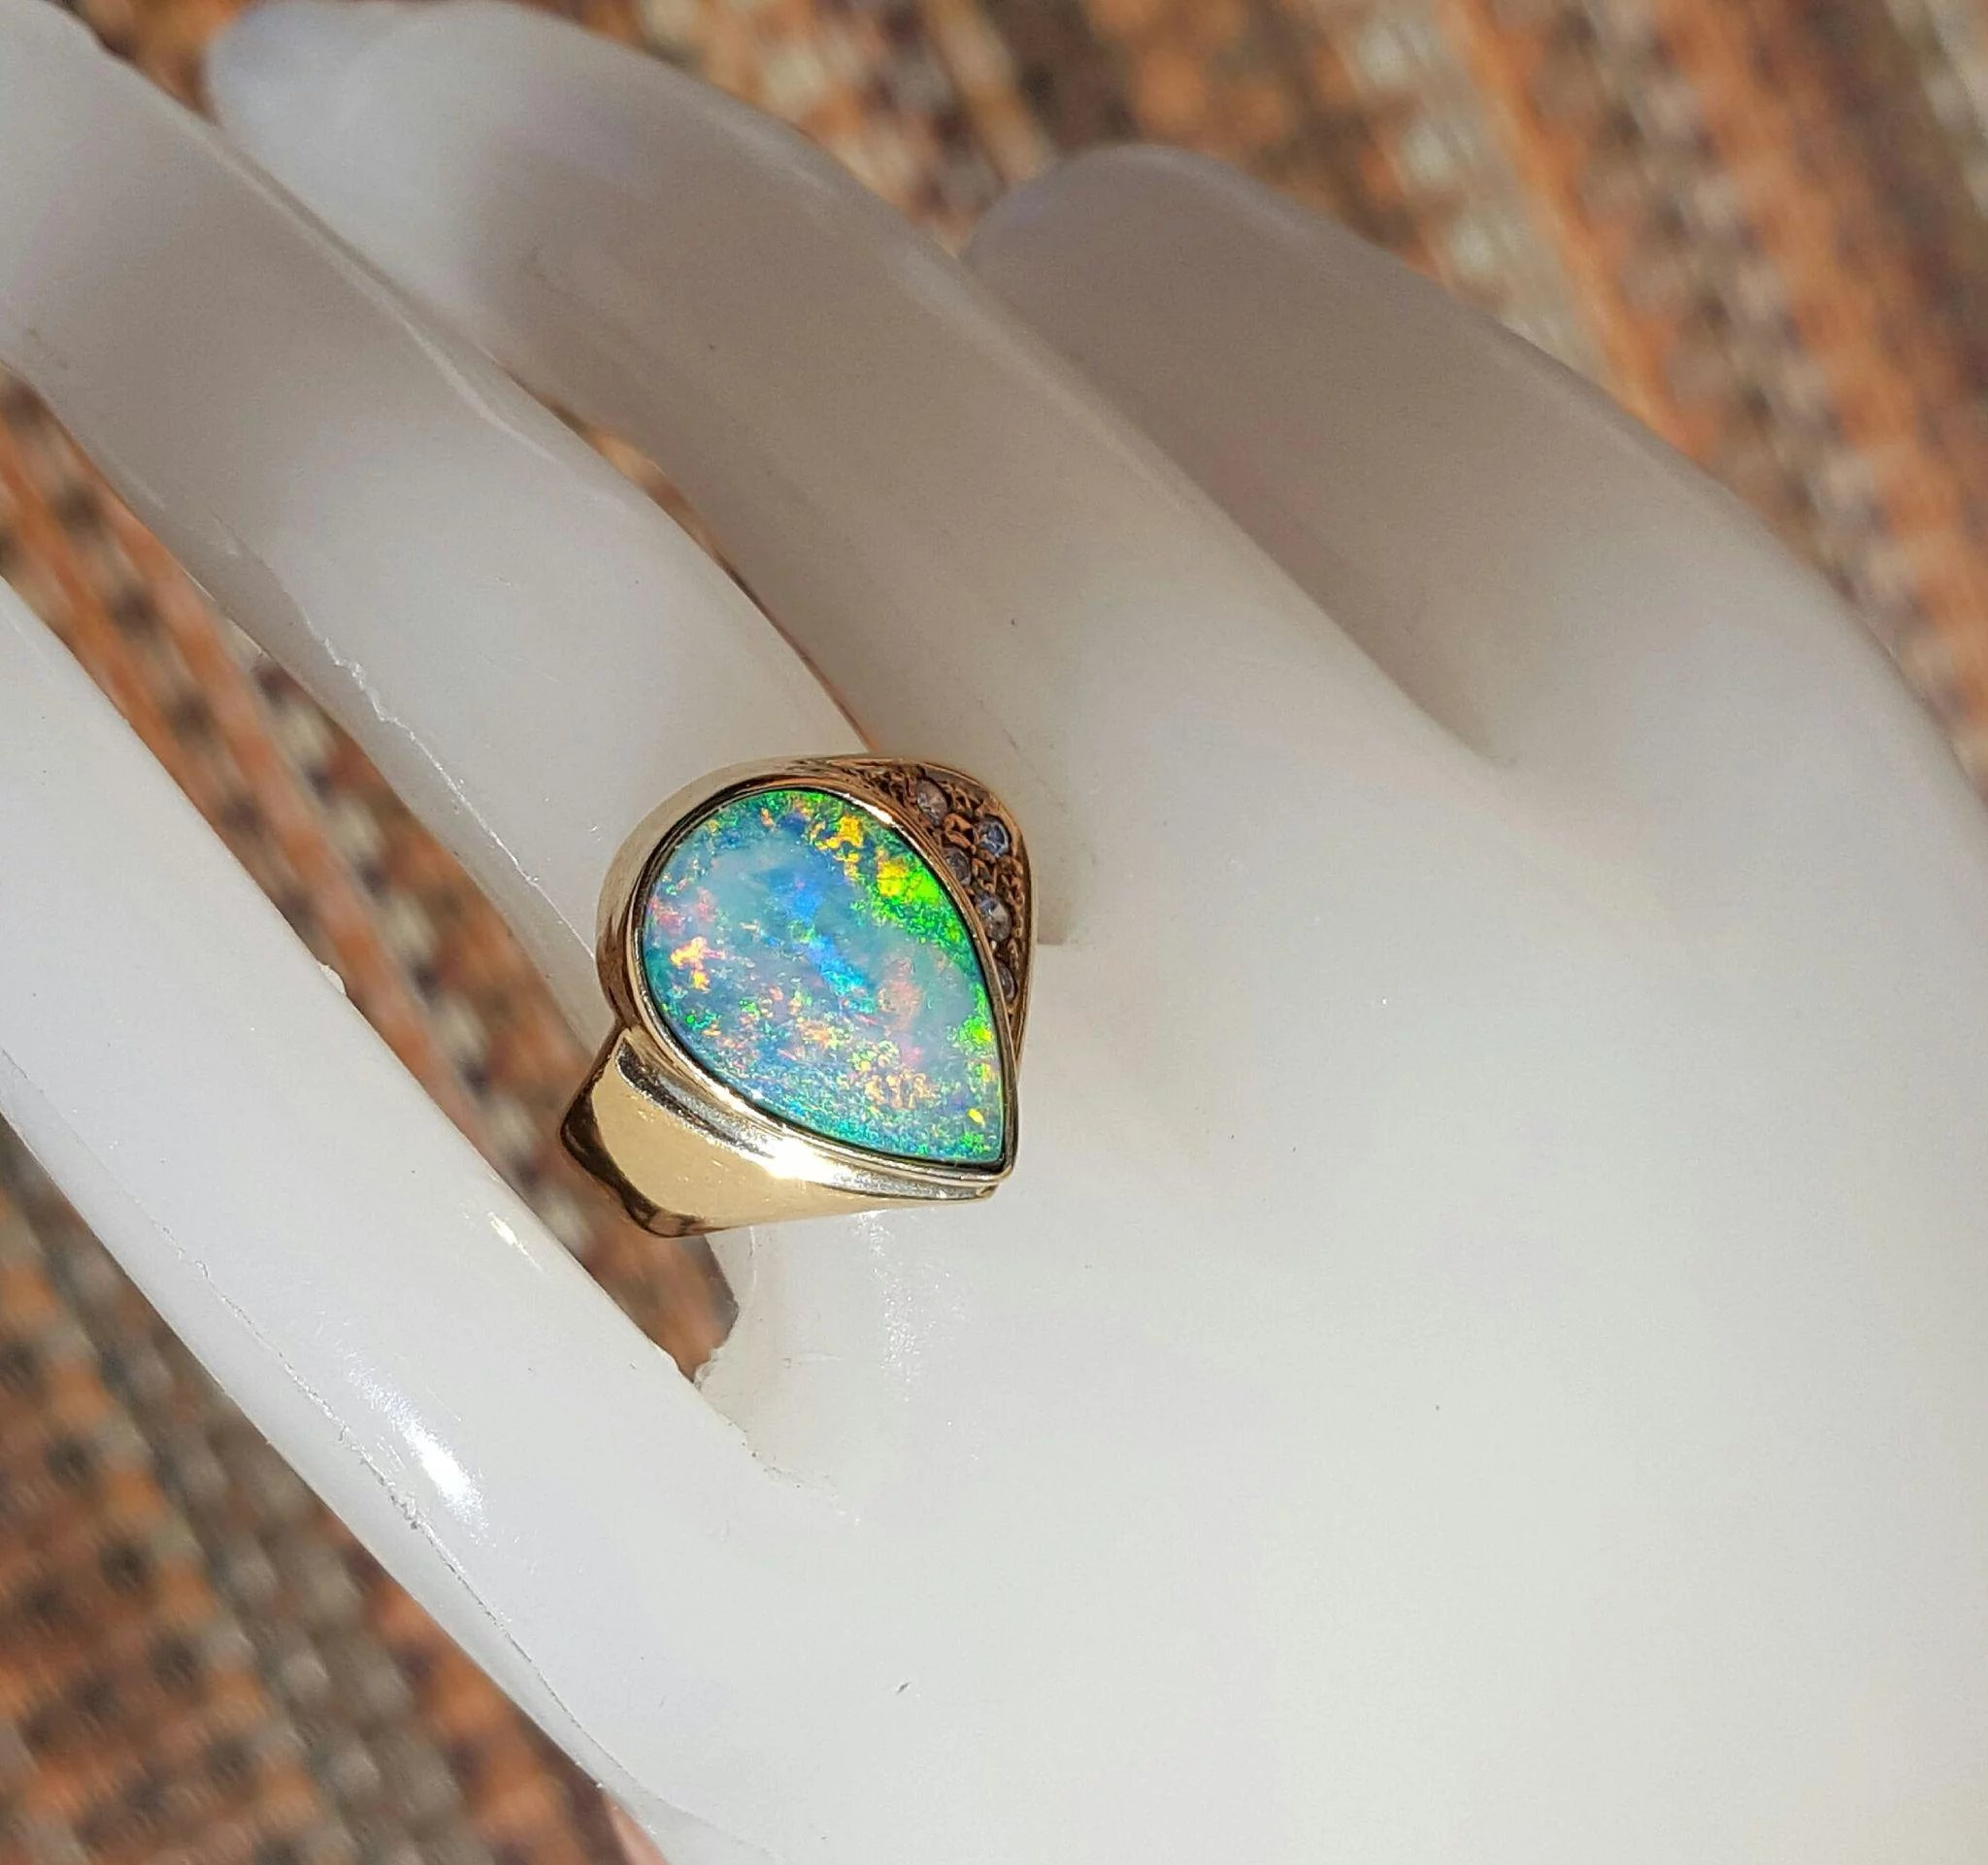 article gemstone stone price black engagement and information value boulder opal rings bracelet carats in australia jewelry